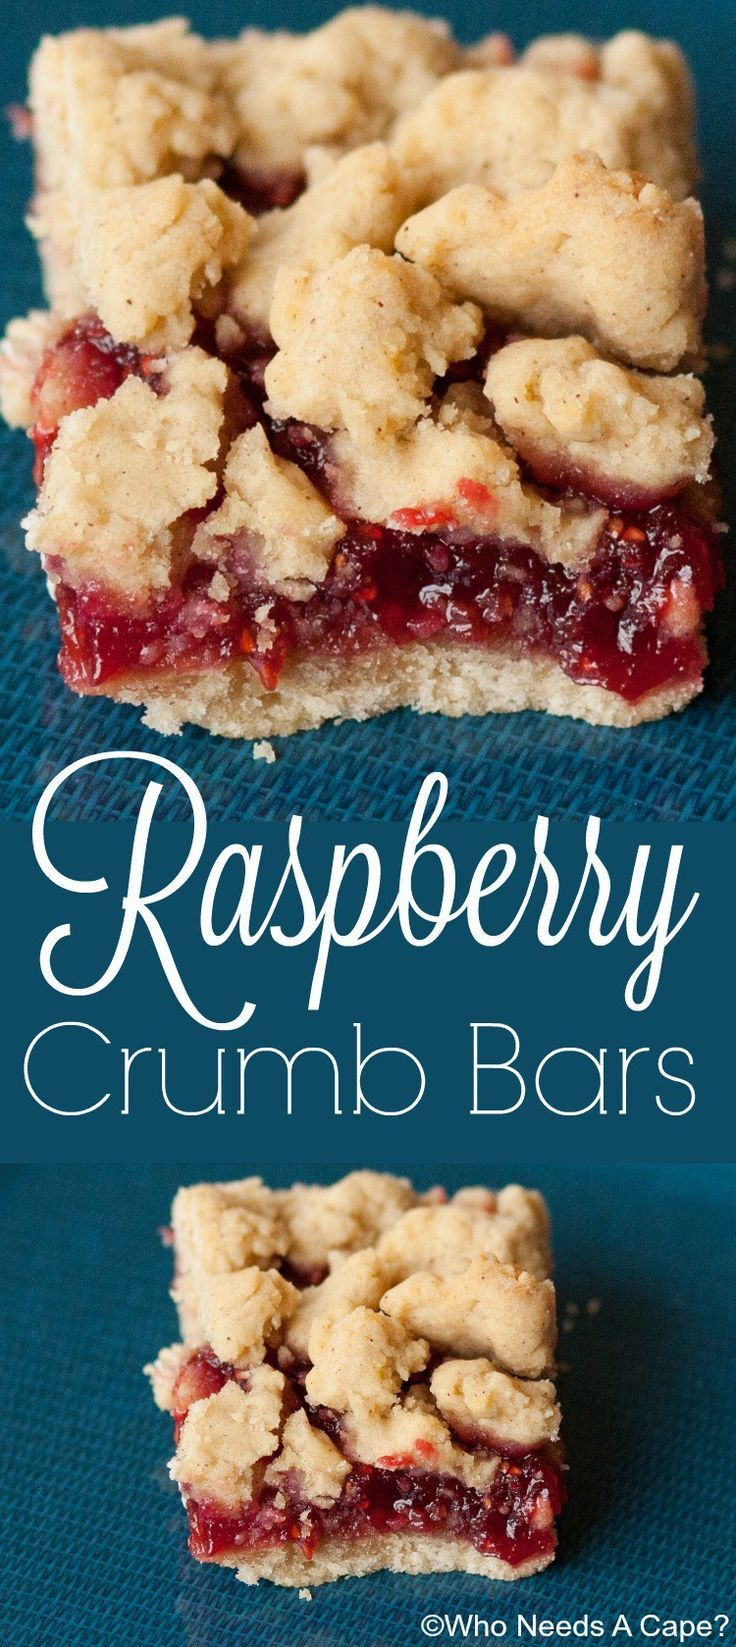 Raspberry crumb bars are sweet and tart at the same time. The butter crumbs and the raspberries compliment each other so well. | Who Needs A Cape?